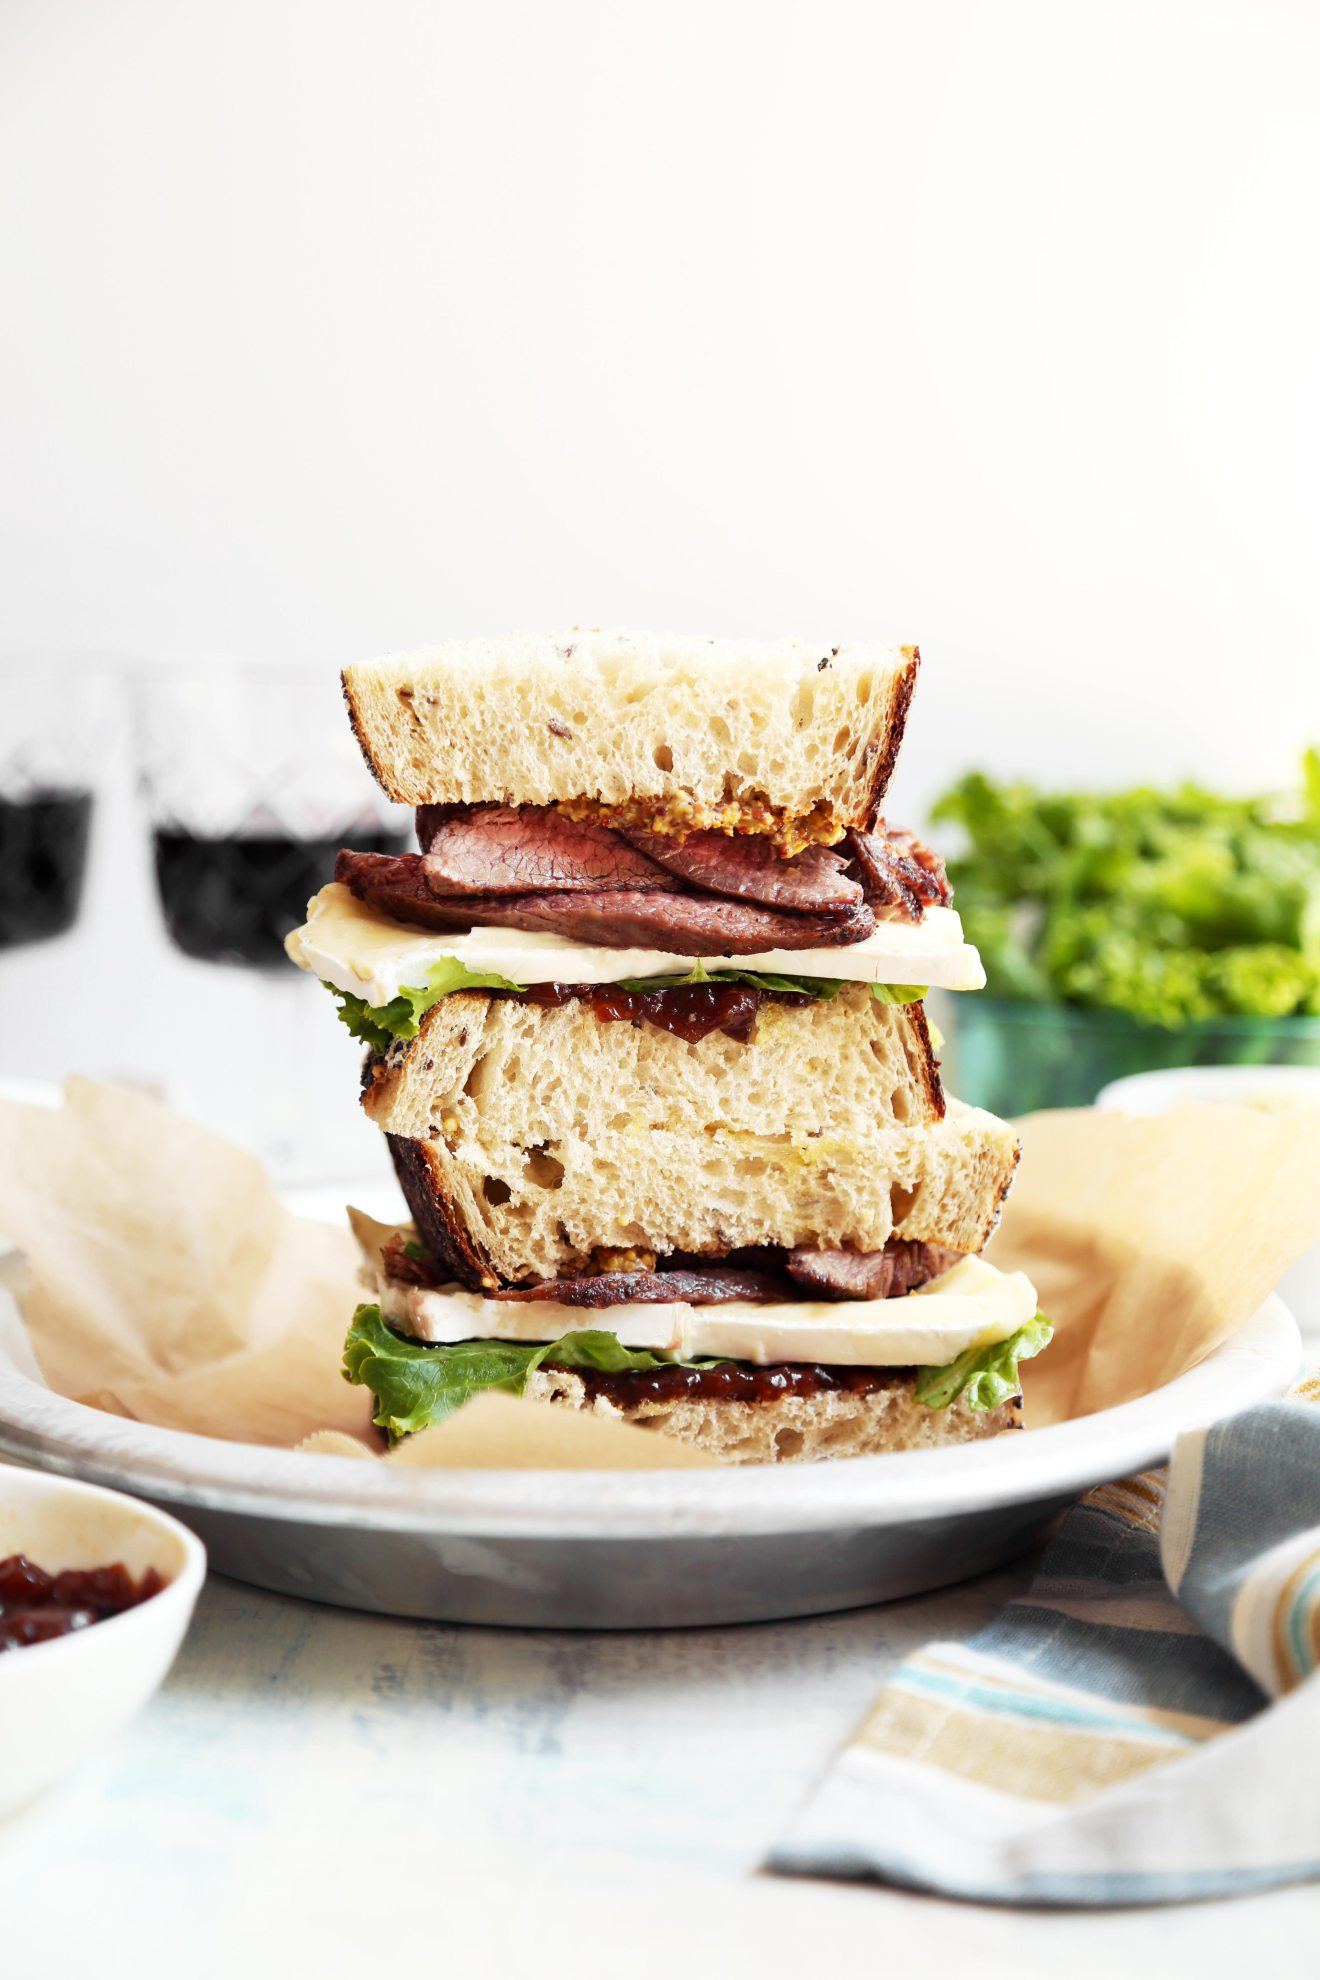 Cool Mom Eats weekly meal plan: Steak and Brie Sandwich at The Candid Appetite